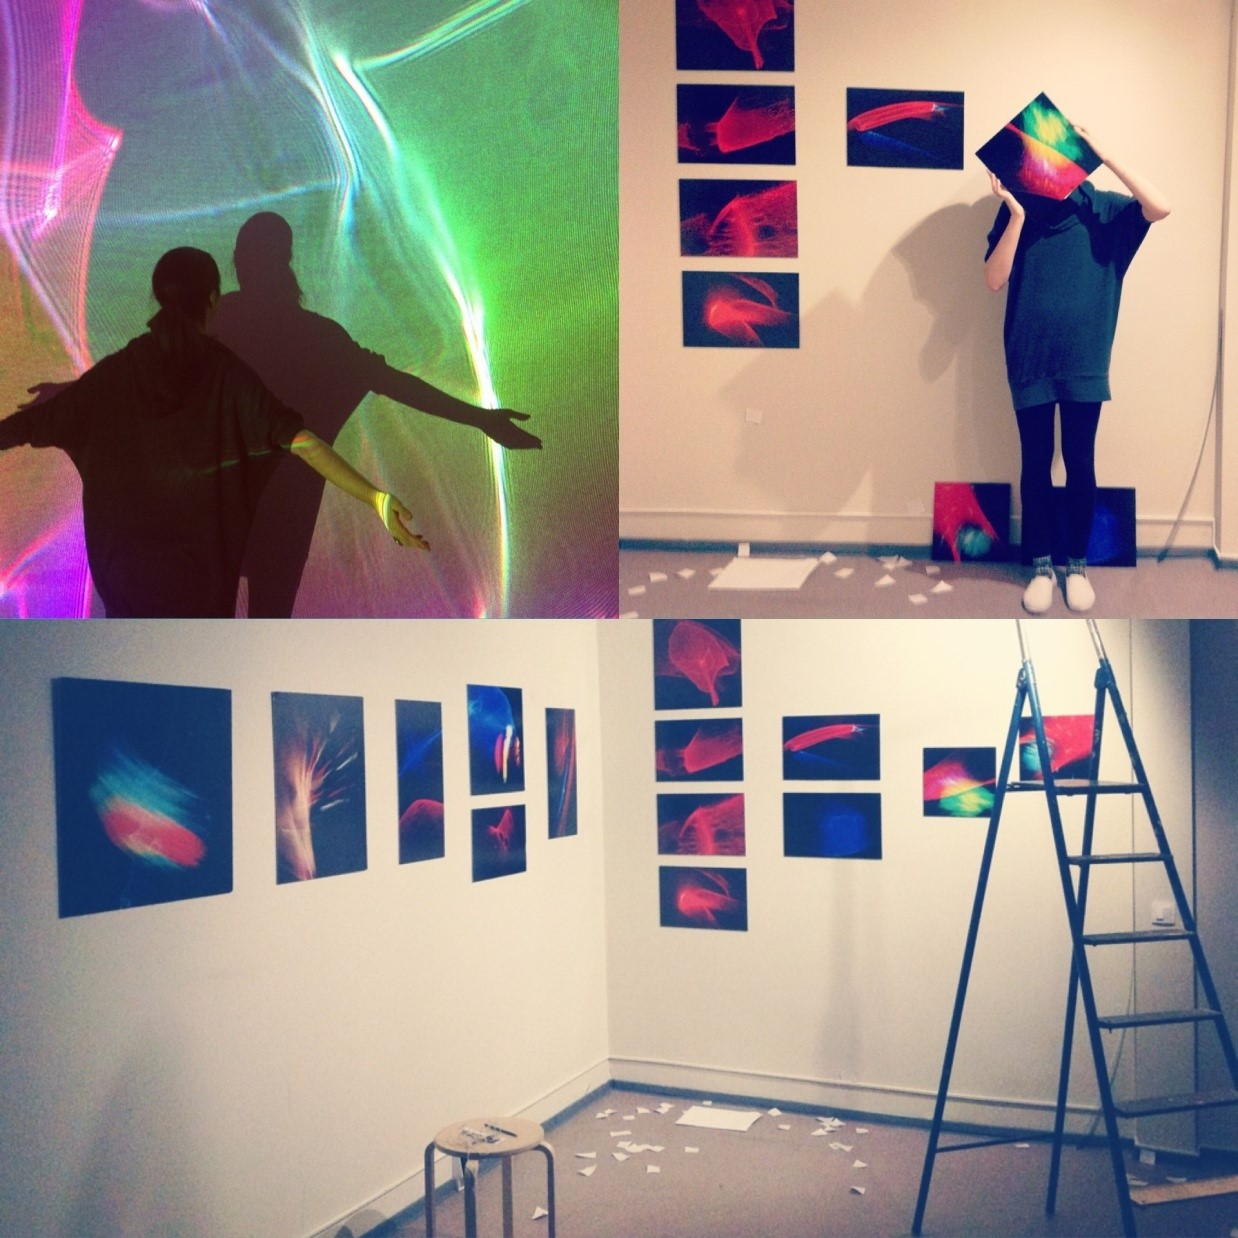 Laser Painting Exhibition by Lux Aeterna Theatre